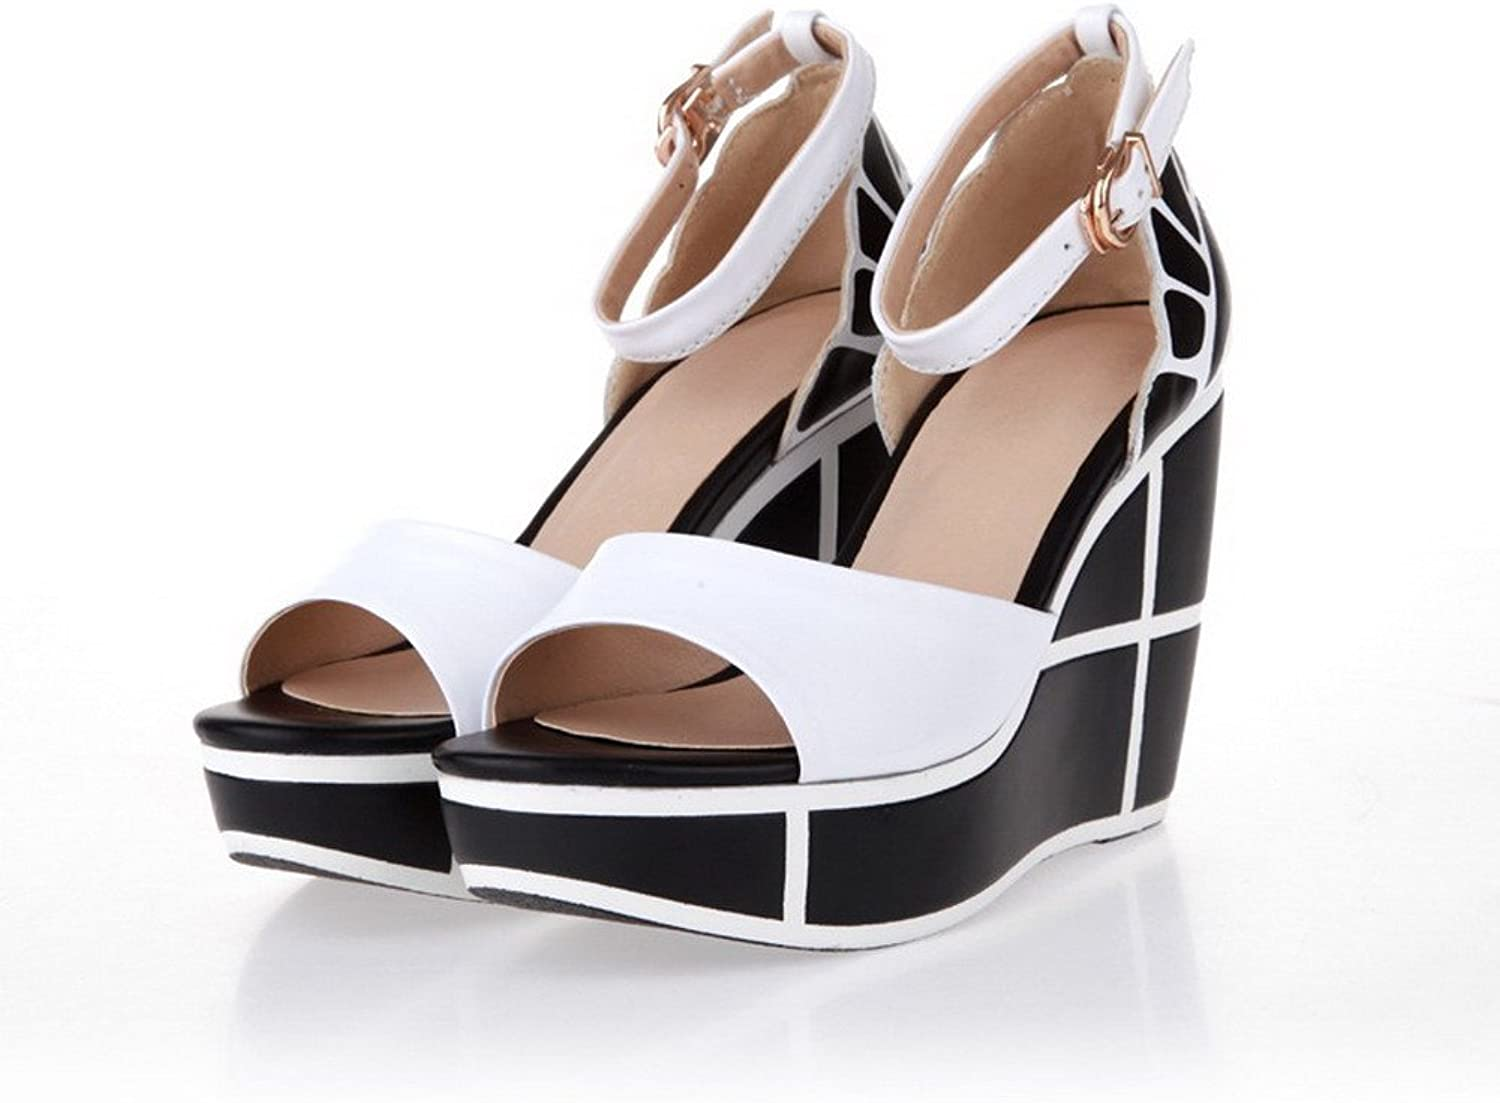 AllhqFashion Women's Round Peep Toe High Heels Cow Leather Solid Sandals with Platform